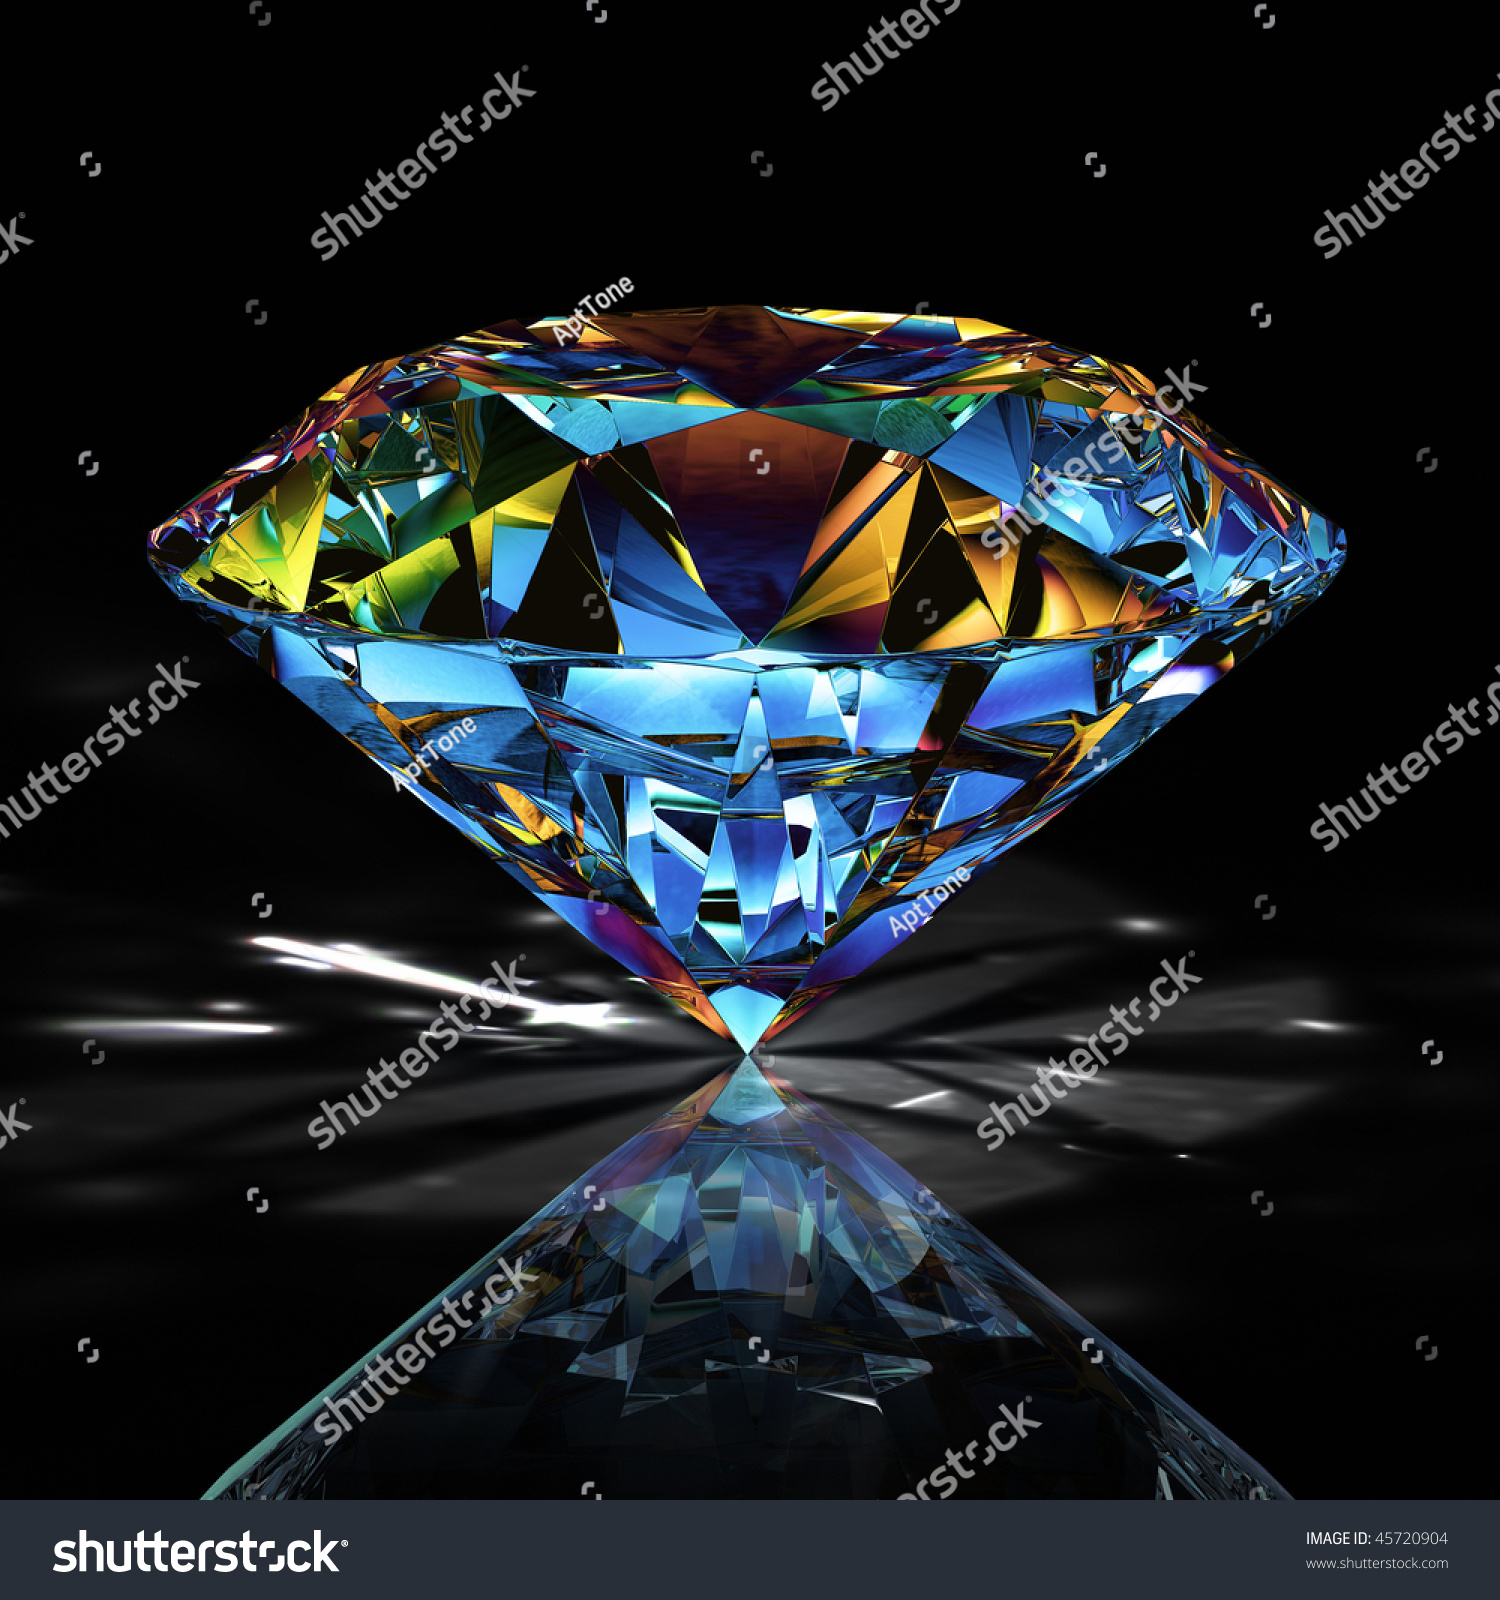 diamond light a background myshoplah d surface rainbow photoa on drawing beautiful sparkle isolated image white reflective sparkling